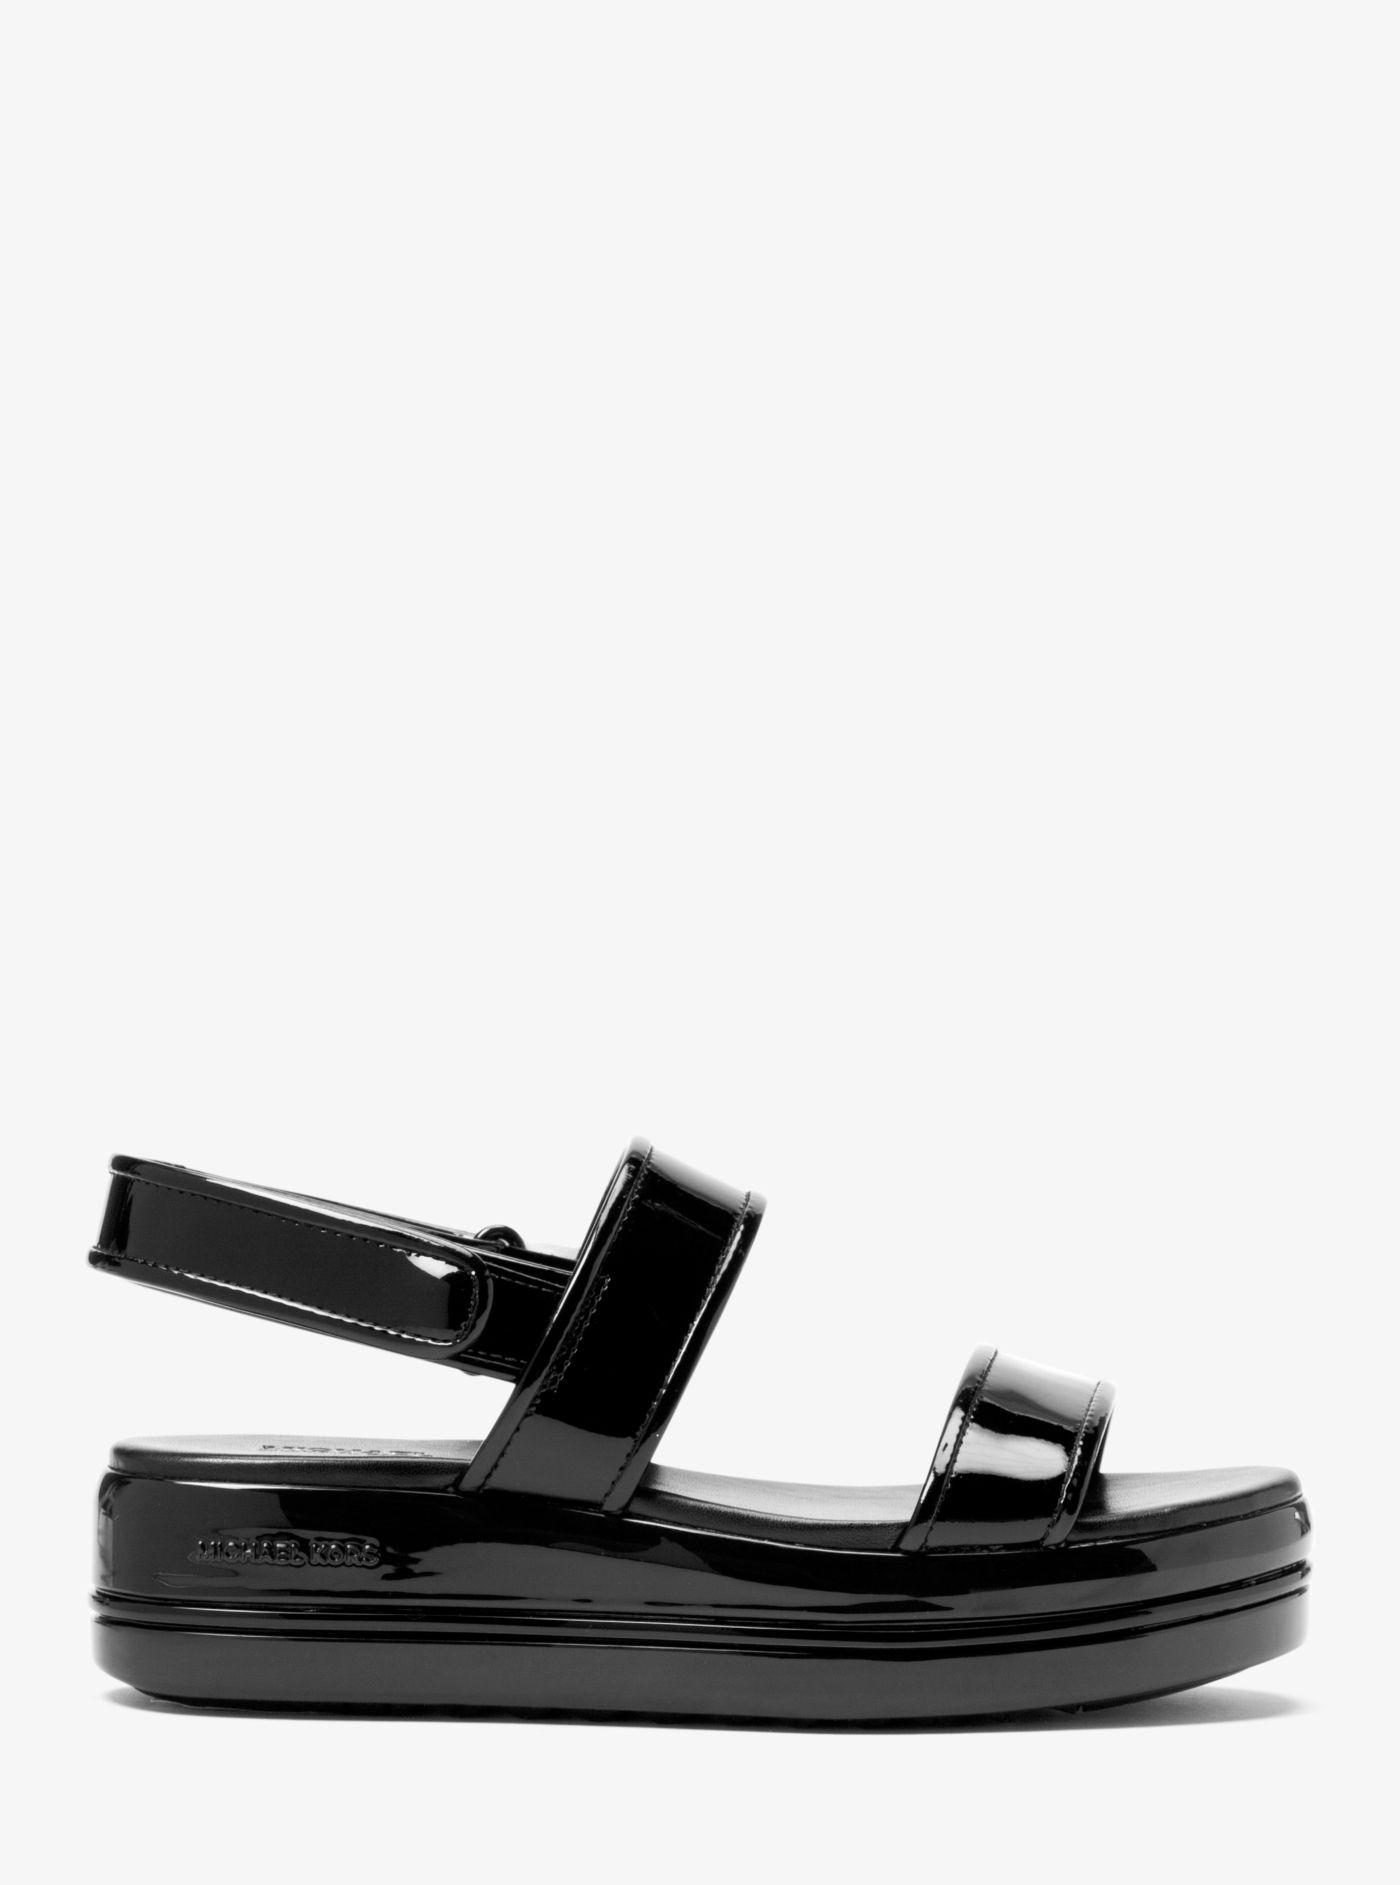 Michael Kors Peggy Patent Leather